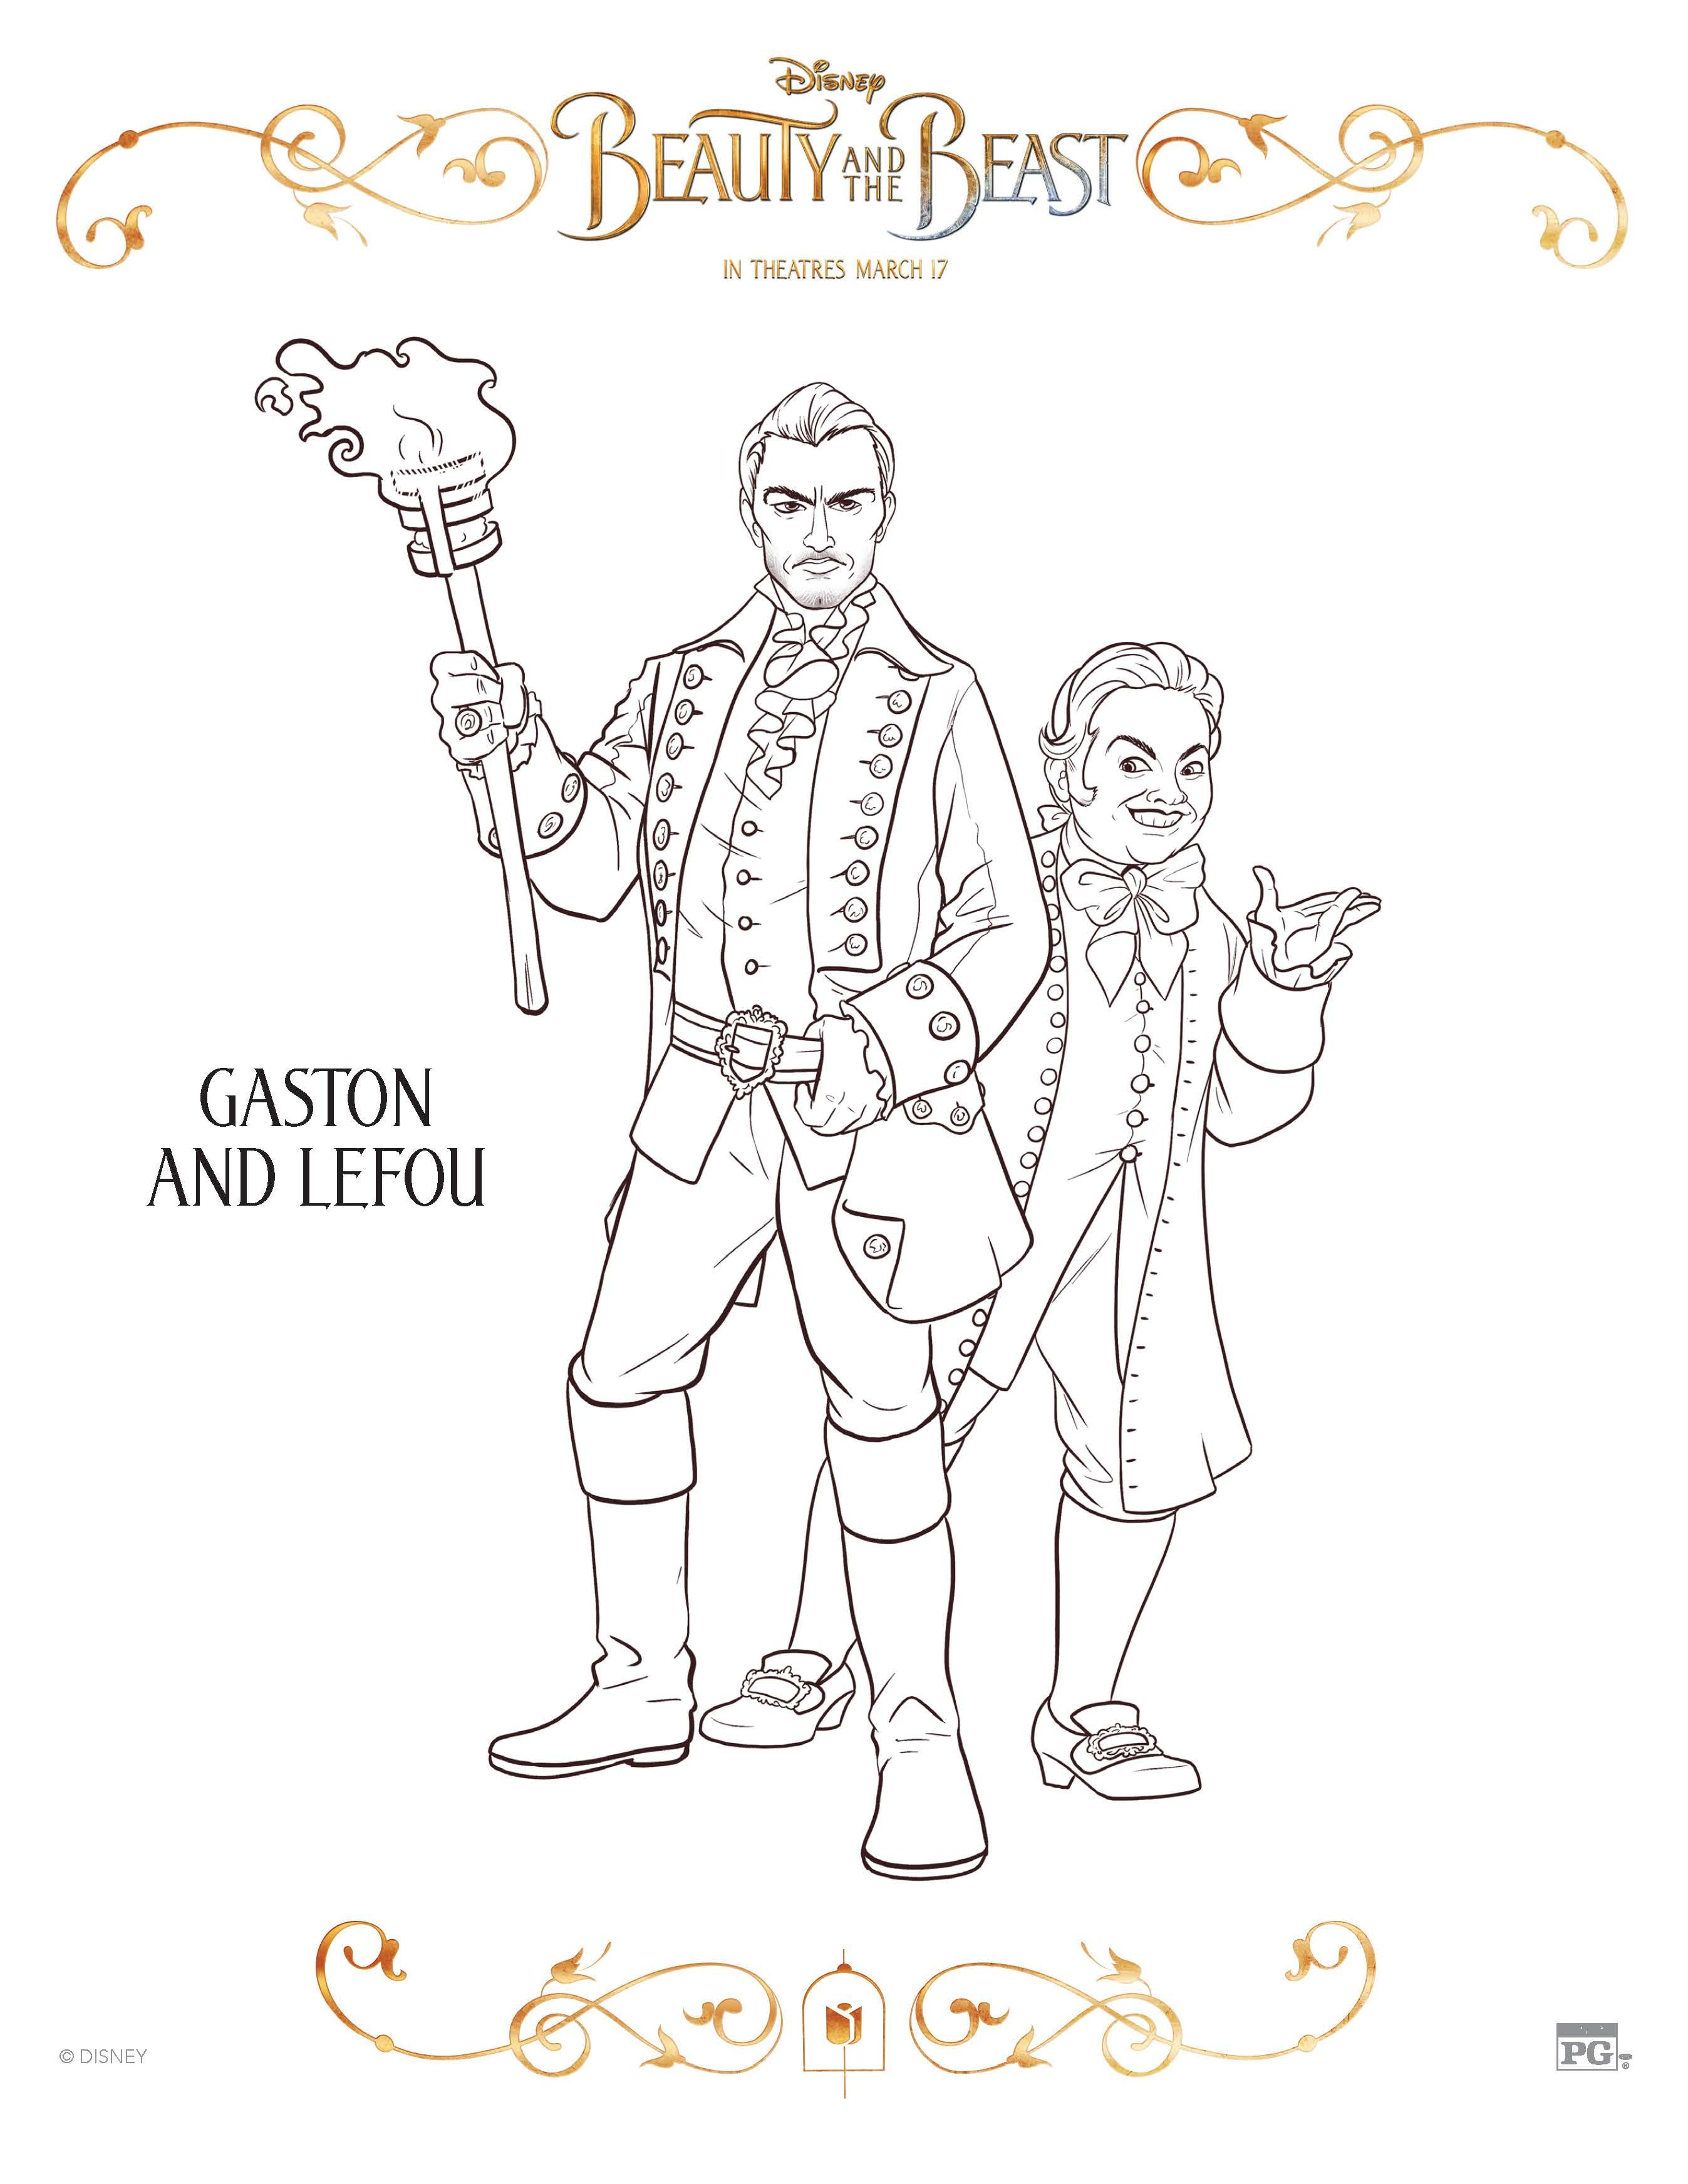 Disney Beauty And The Beast Gaston Lefou Coloring Page